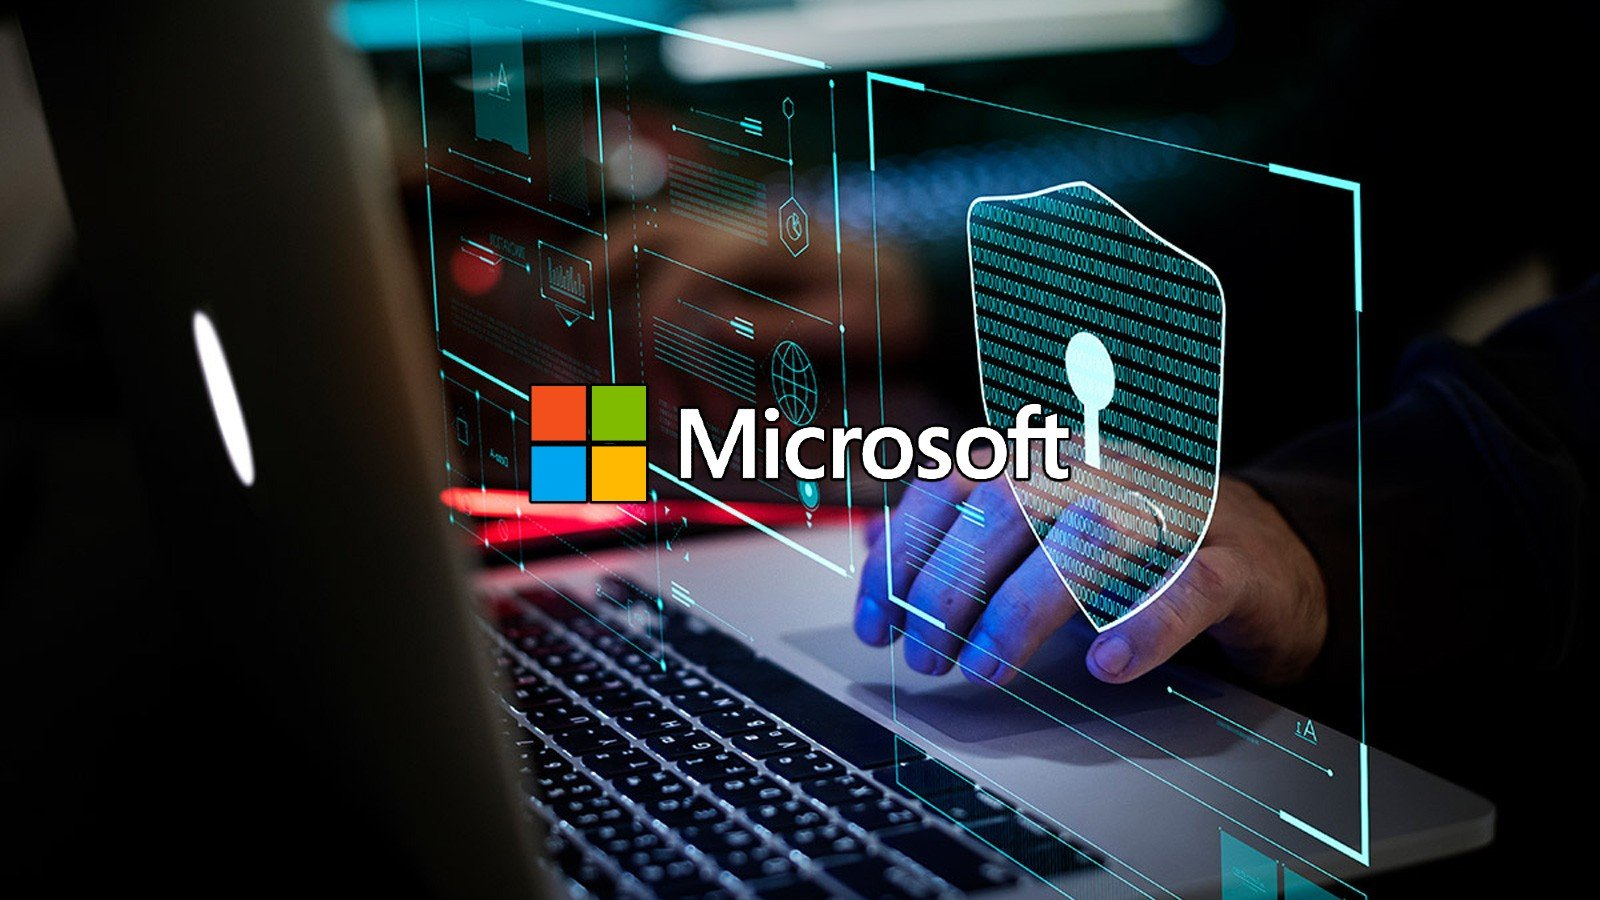 Microsoft rolls out passwordless login for all Microsoft accounts